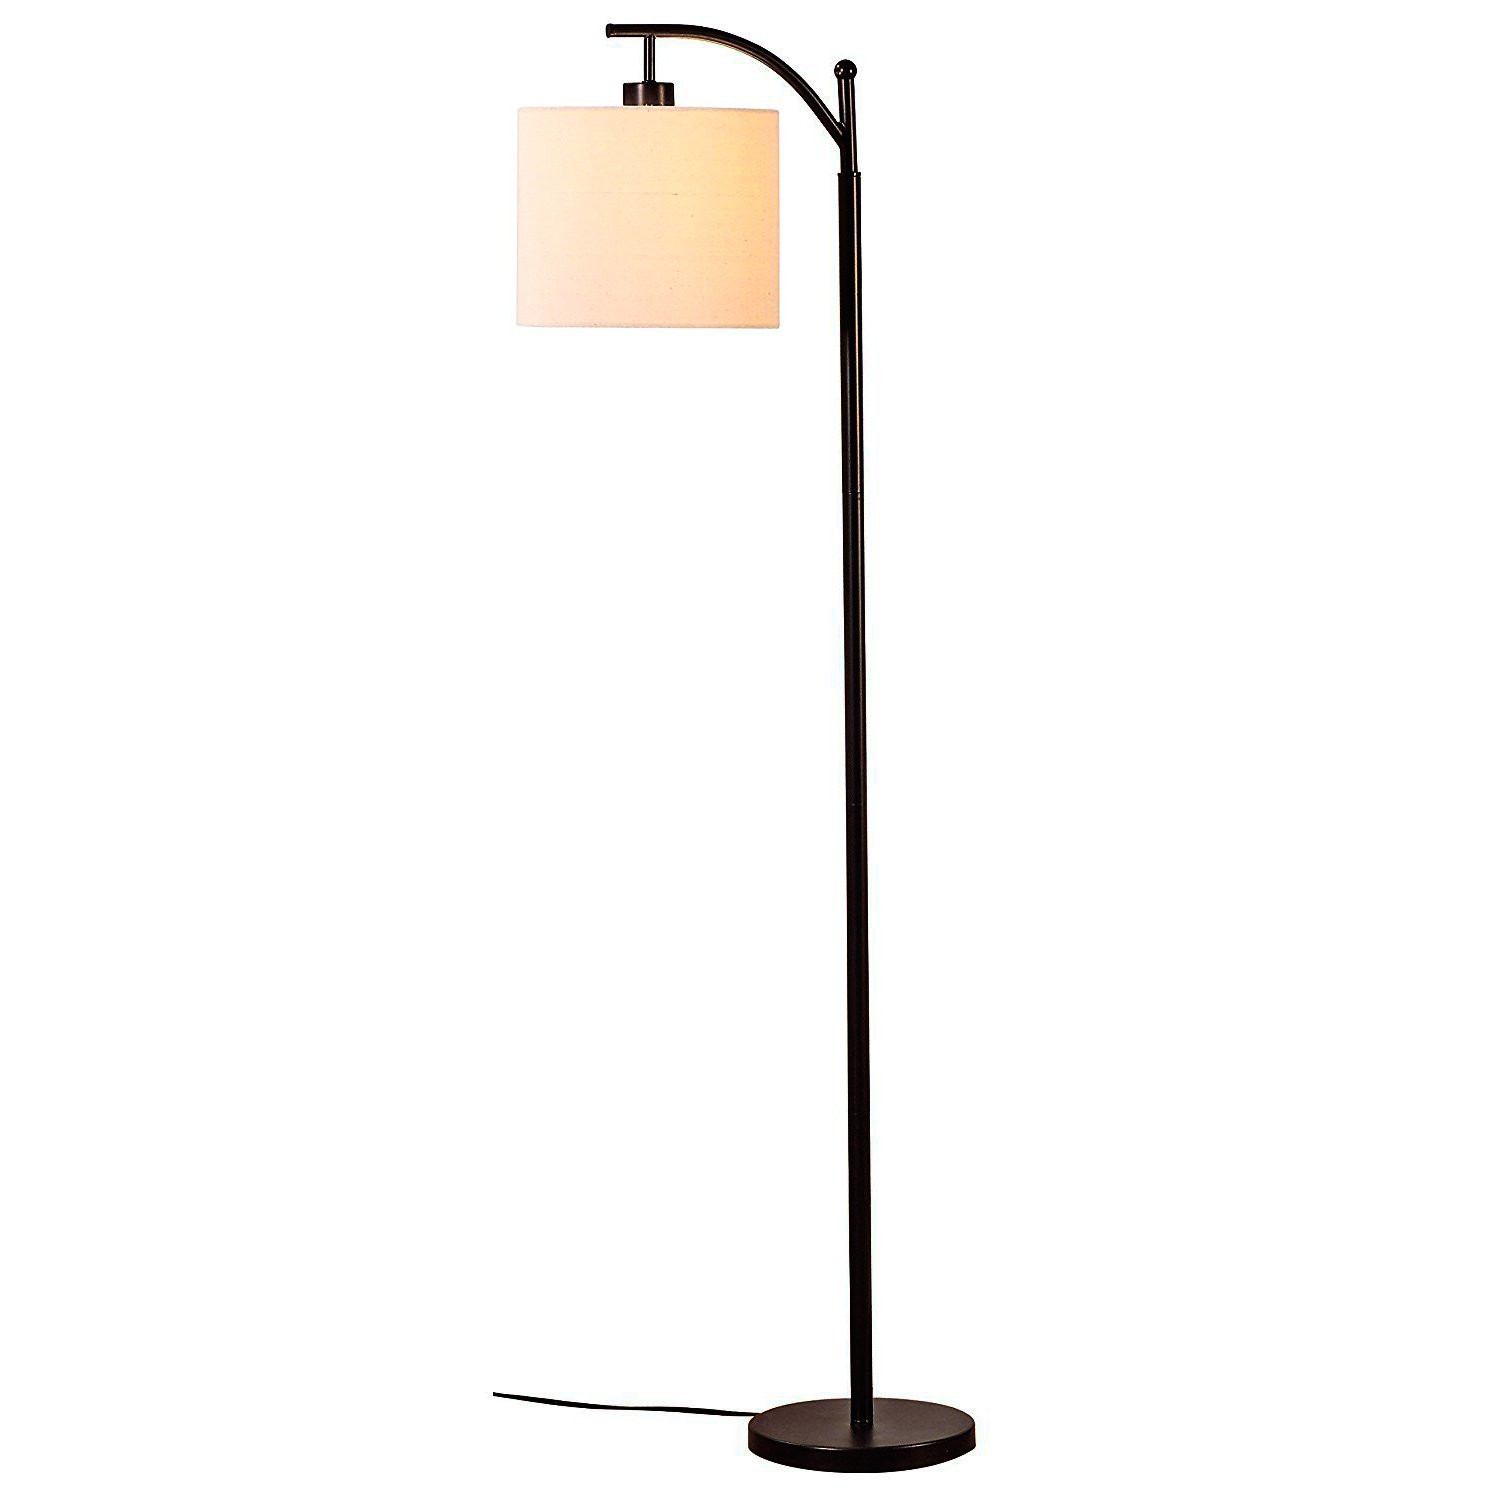 Brightech Montage Bedroom LED Floor Lamp - Alexa Compatible Industrial Arc Light with Hanging Lamp Shade - Tall Uplight Lamp for Office - with LED Bulb- Black